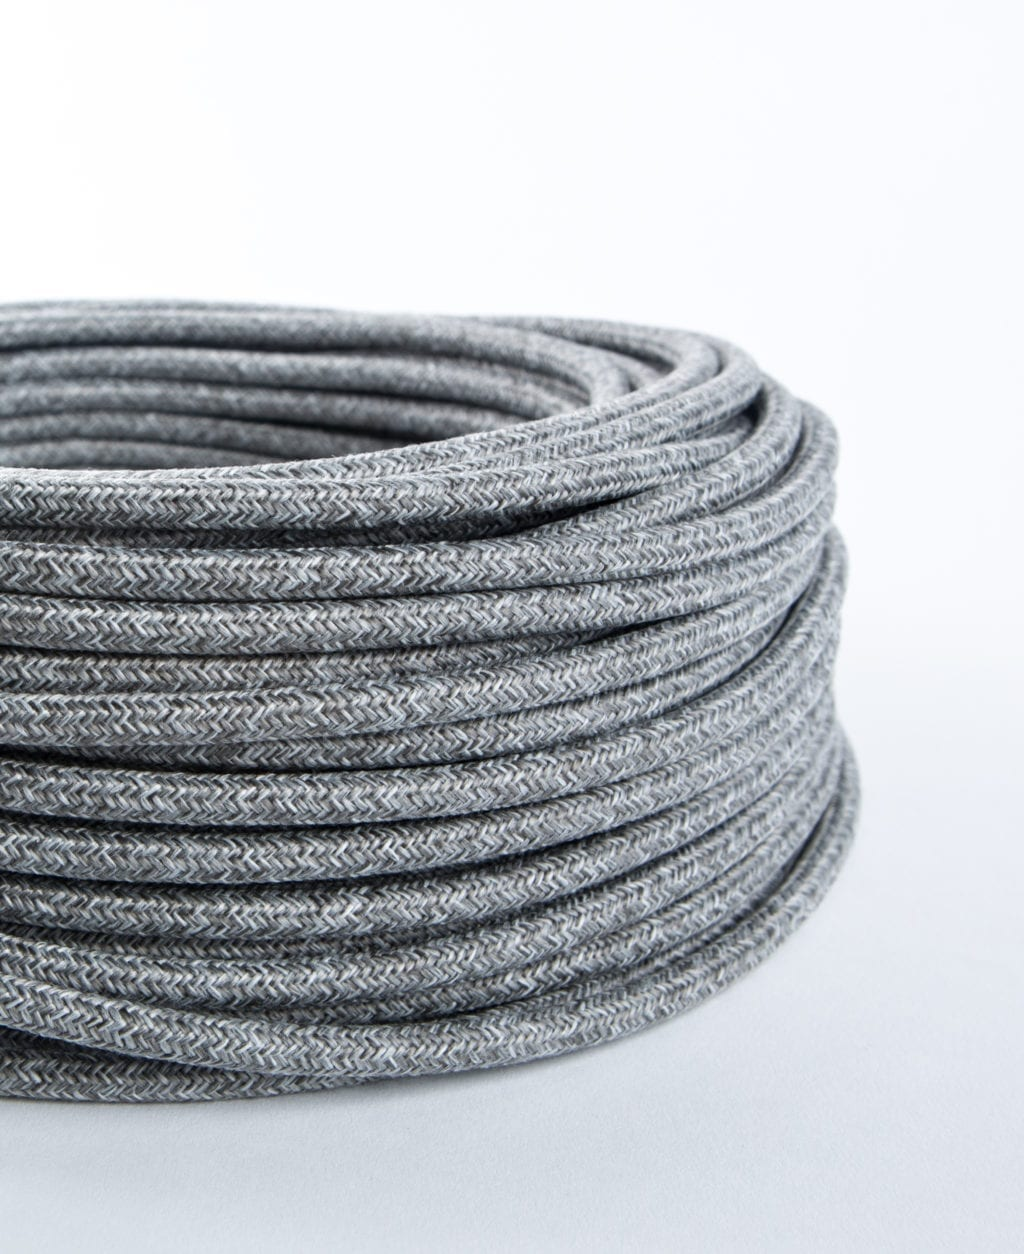 closeup of grey jumper fabric cable coil against white background